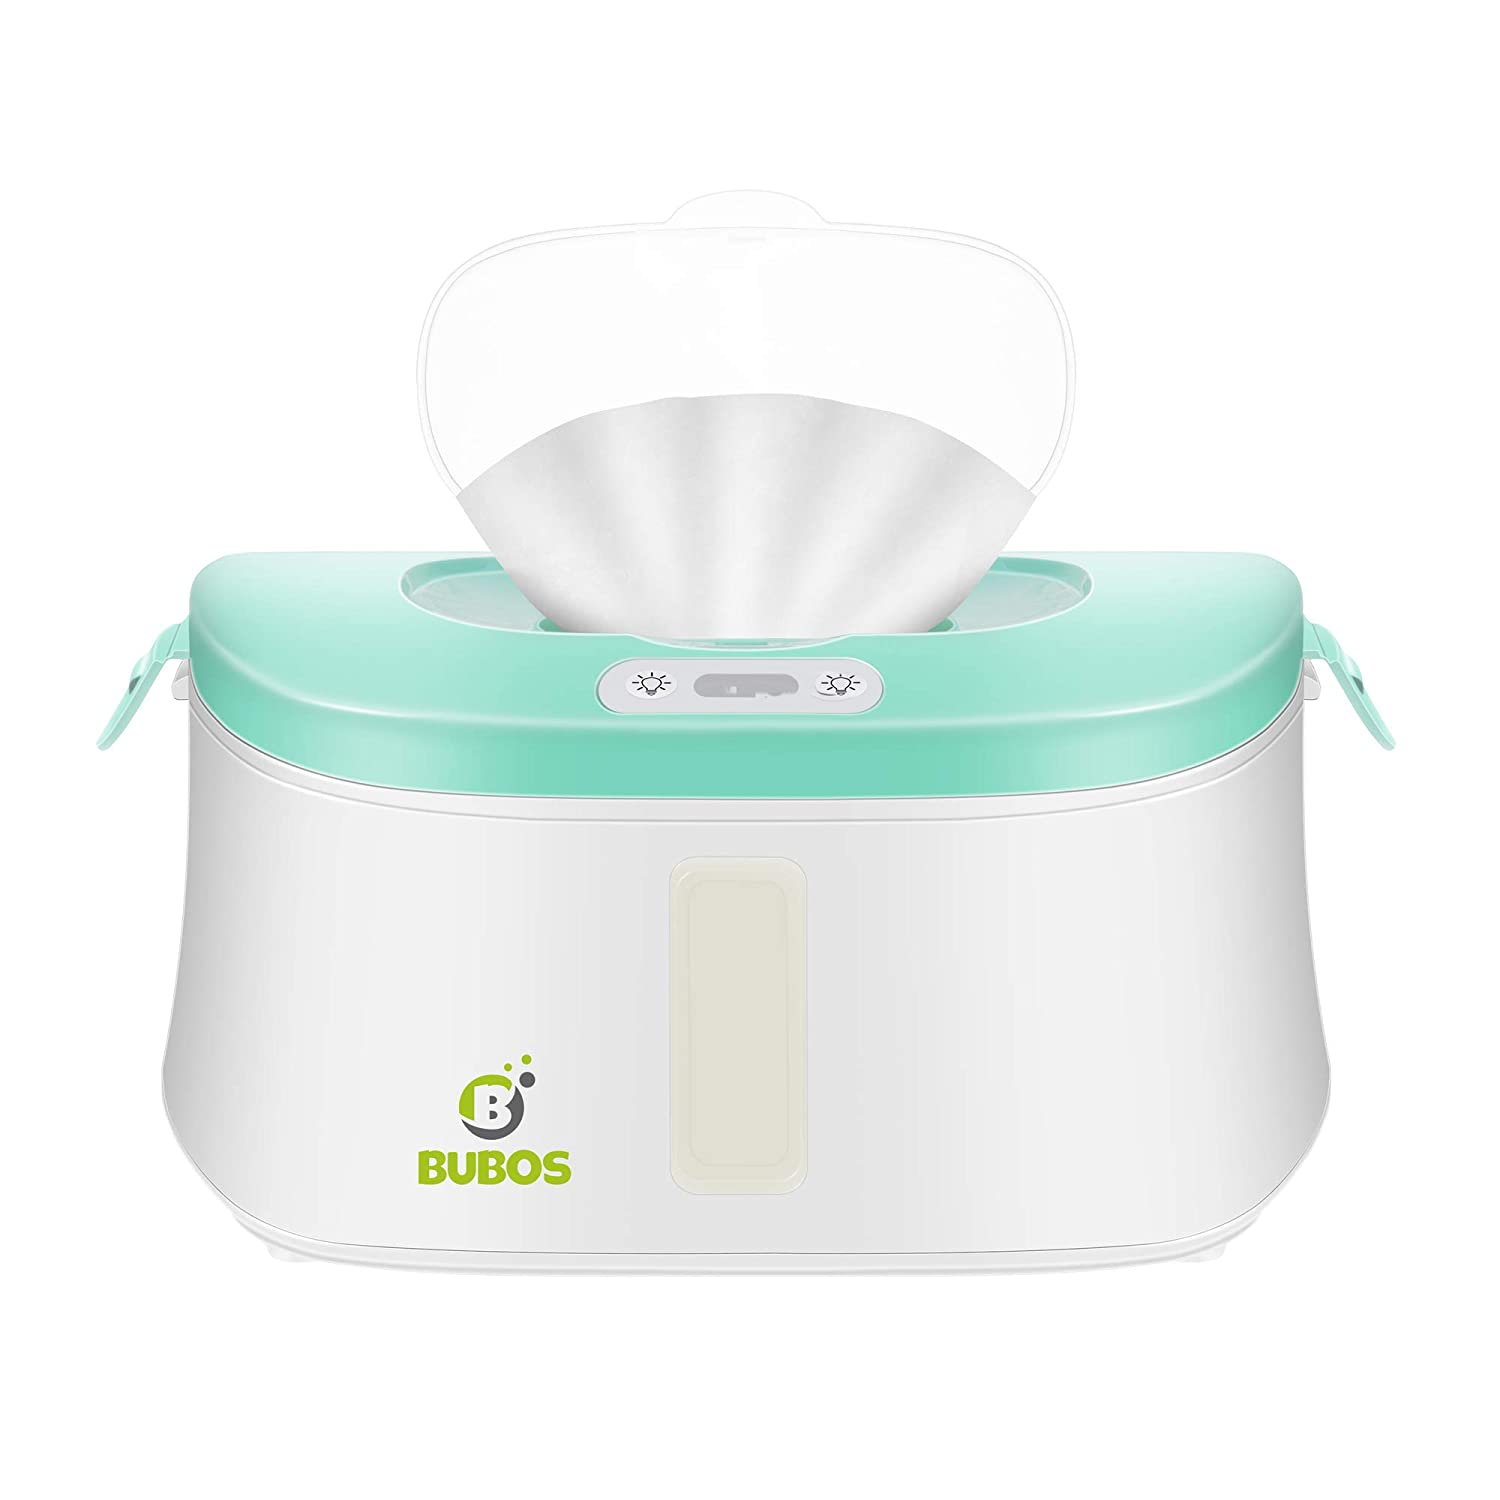 Bubos Upgraded Wipe Warmer and Wet Wipes Dispenser with Advanced LED Night Light